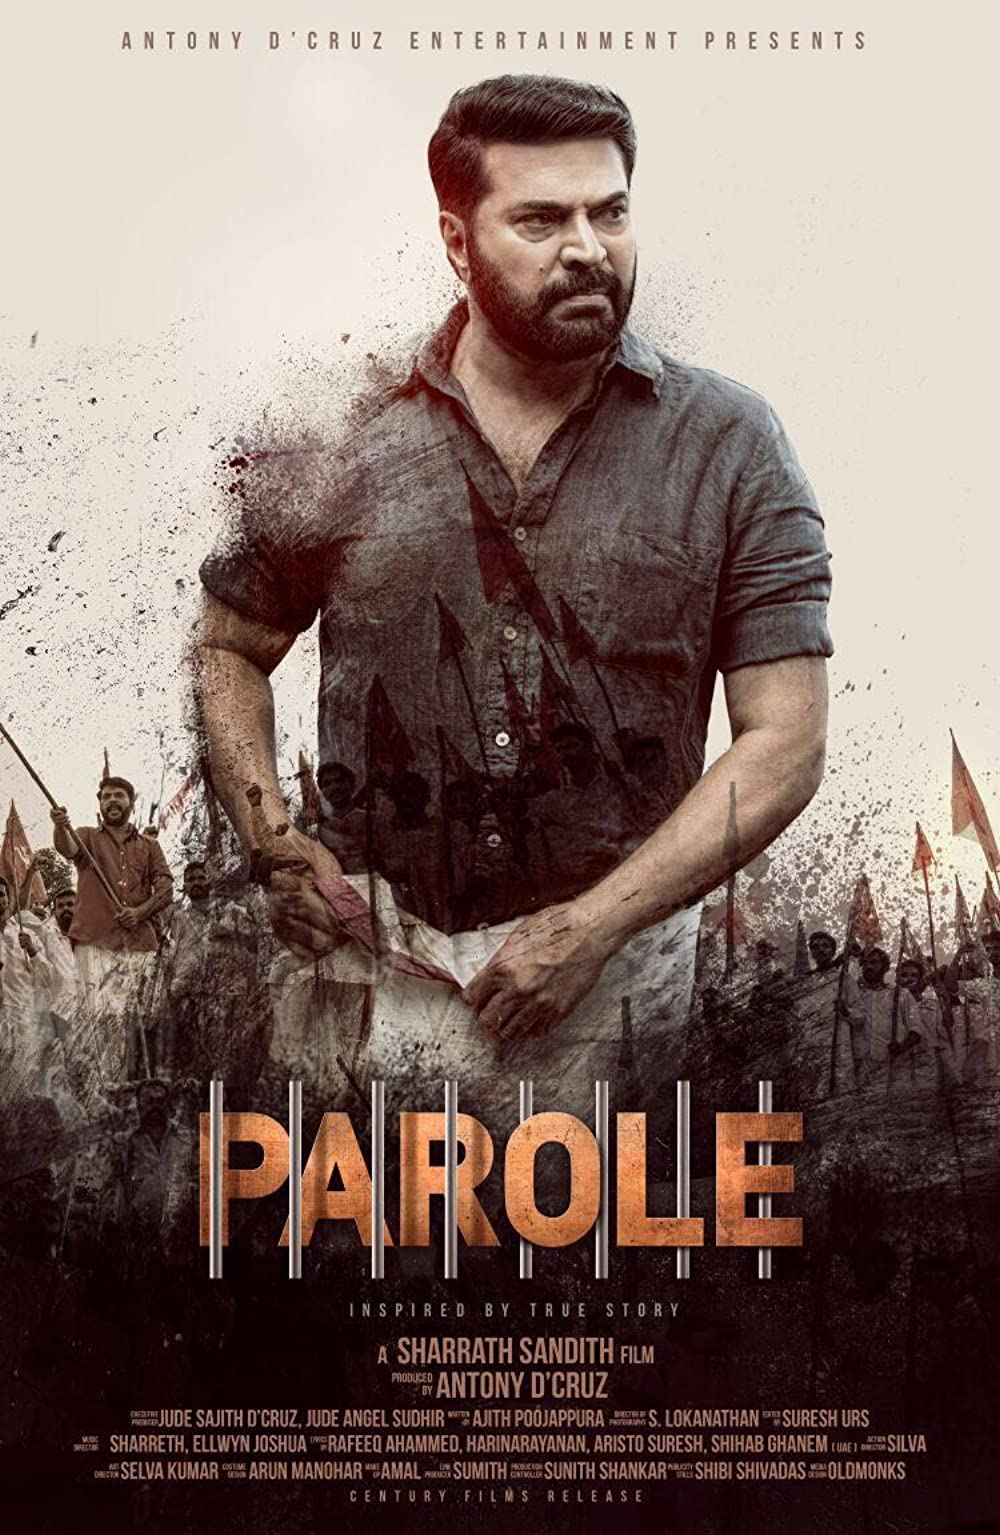 Parol (Parole) 2021 Hindi Dubbed 1080p HDRip 1.4GB x264 AAC